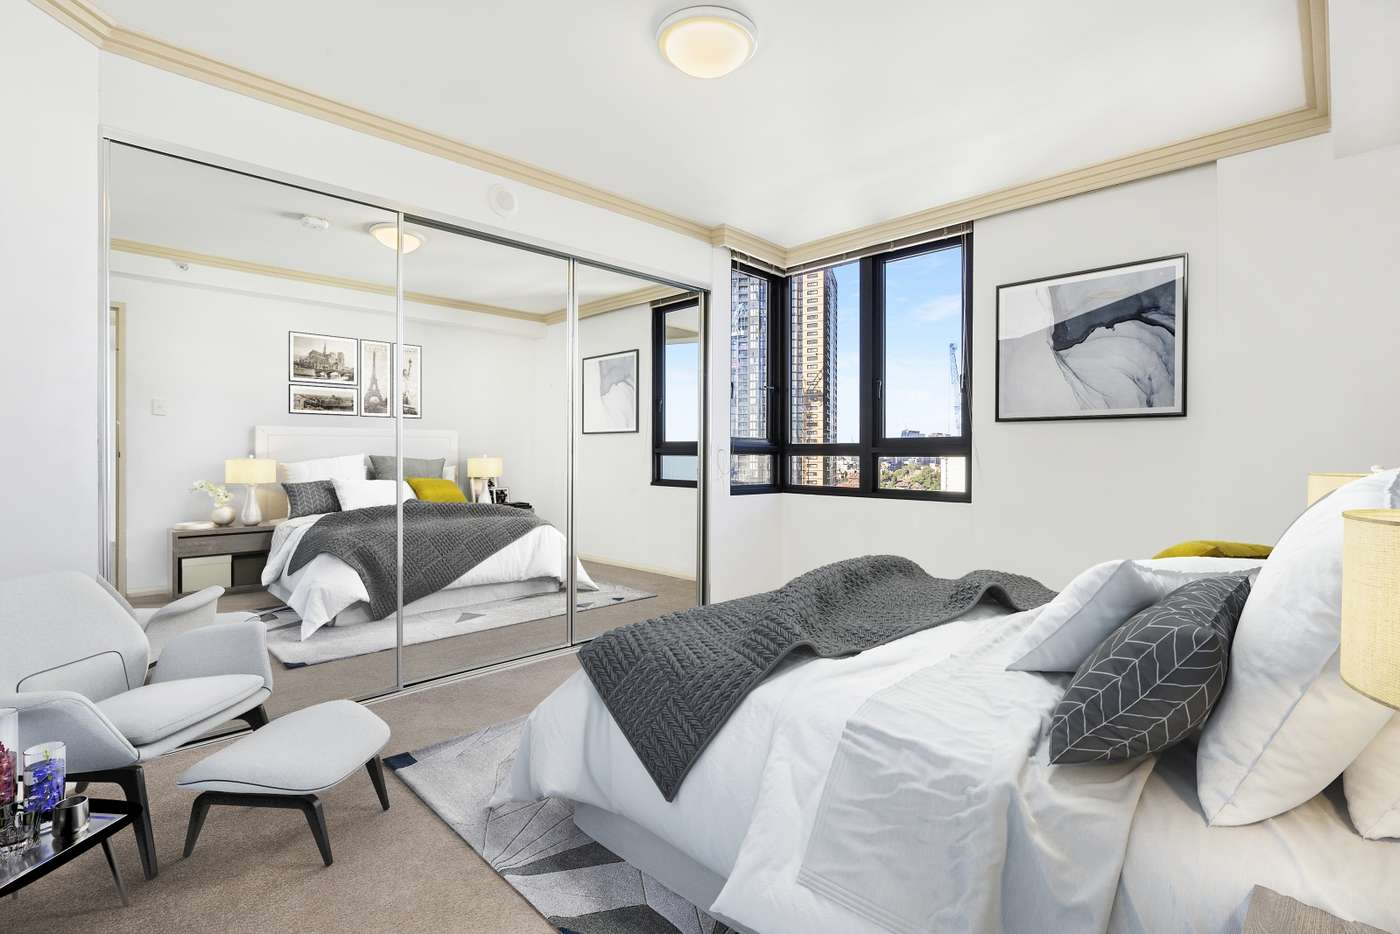 Sixth view of Homely apartment listing, 1420/1 Sergeants Lane, St Leonards NSW 2065